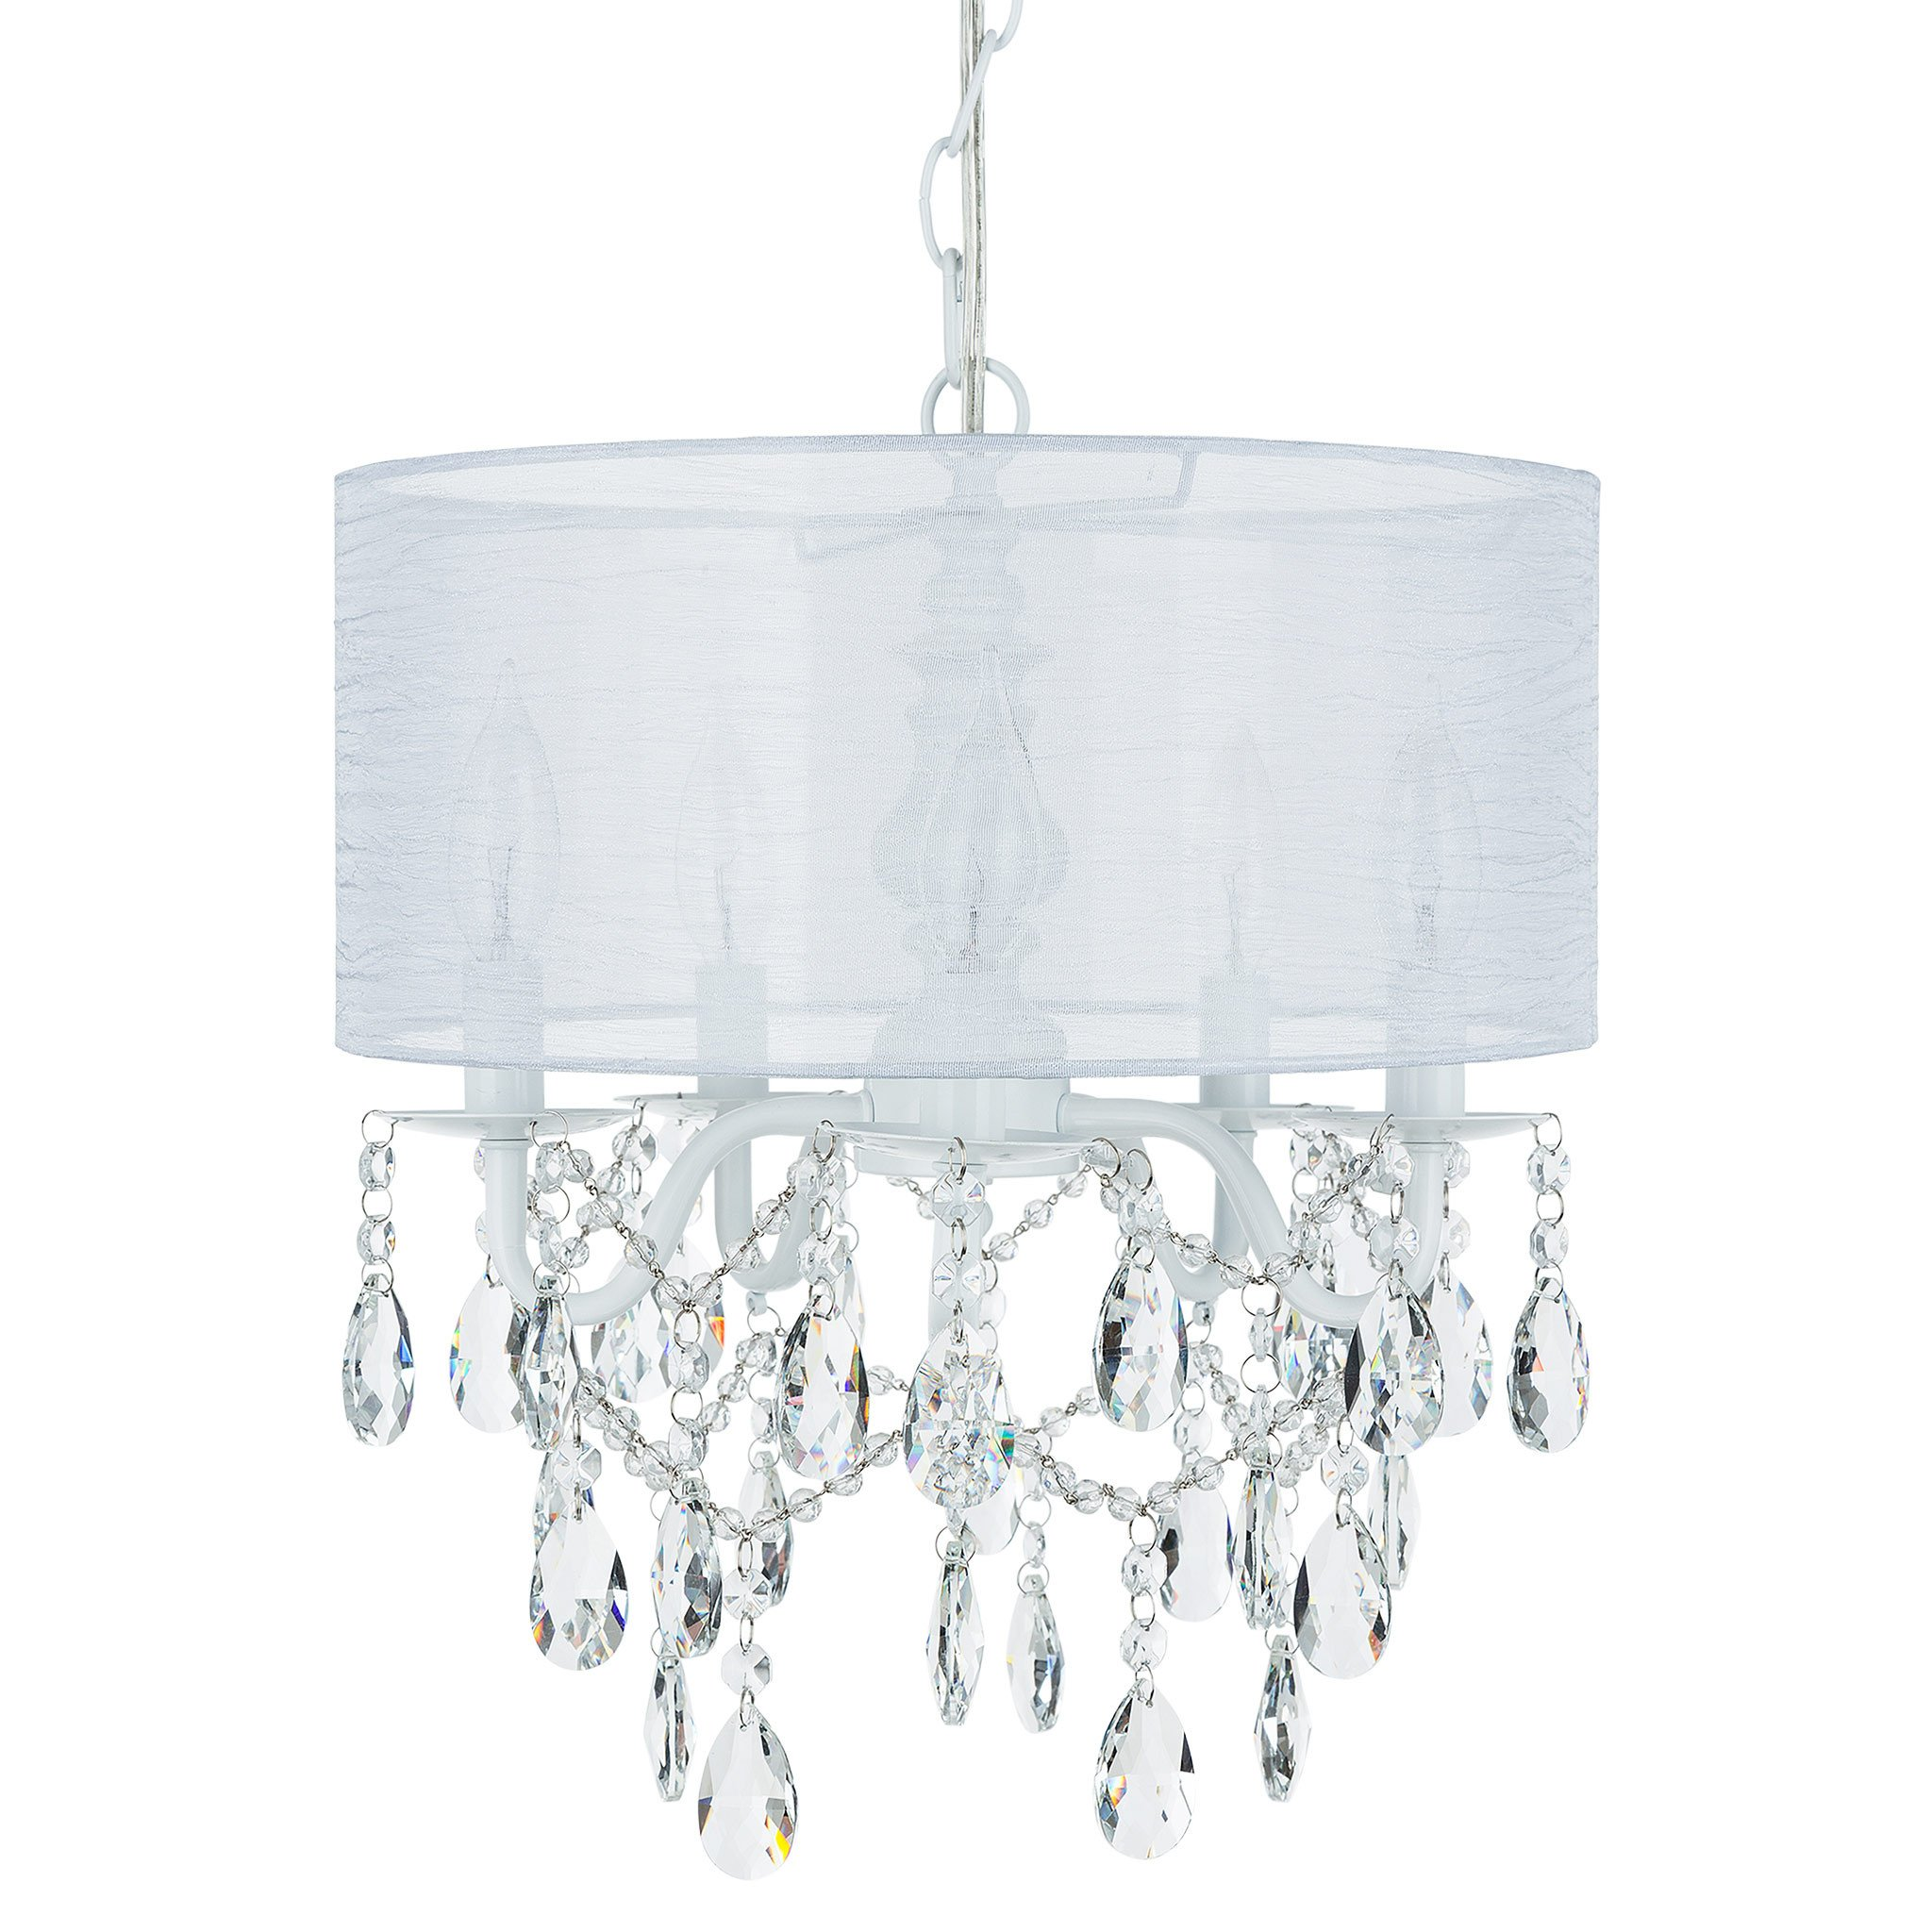 Amalfi Decor 5 Light Crystal Plug-In Chandelier with Cylinder Shade (White)   H   Wrought Iron Frame with... by